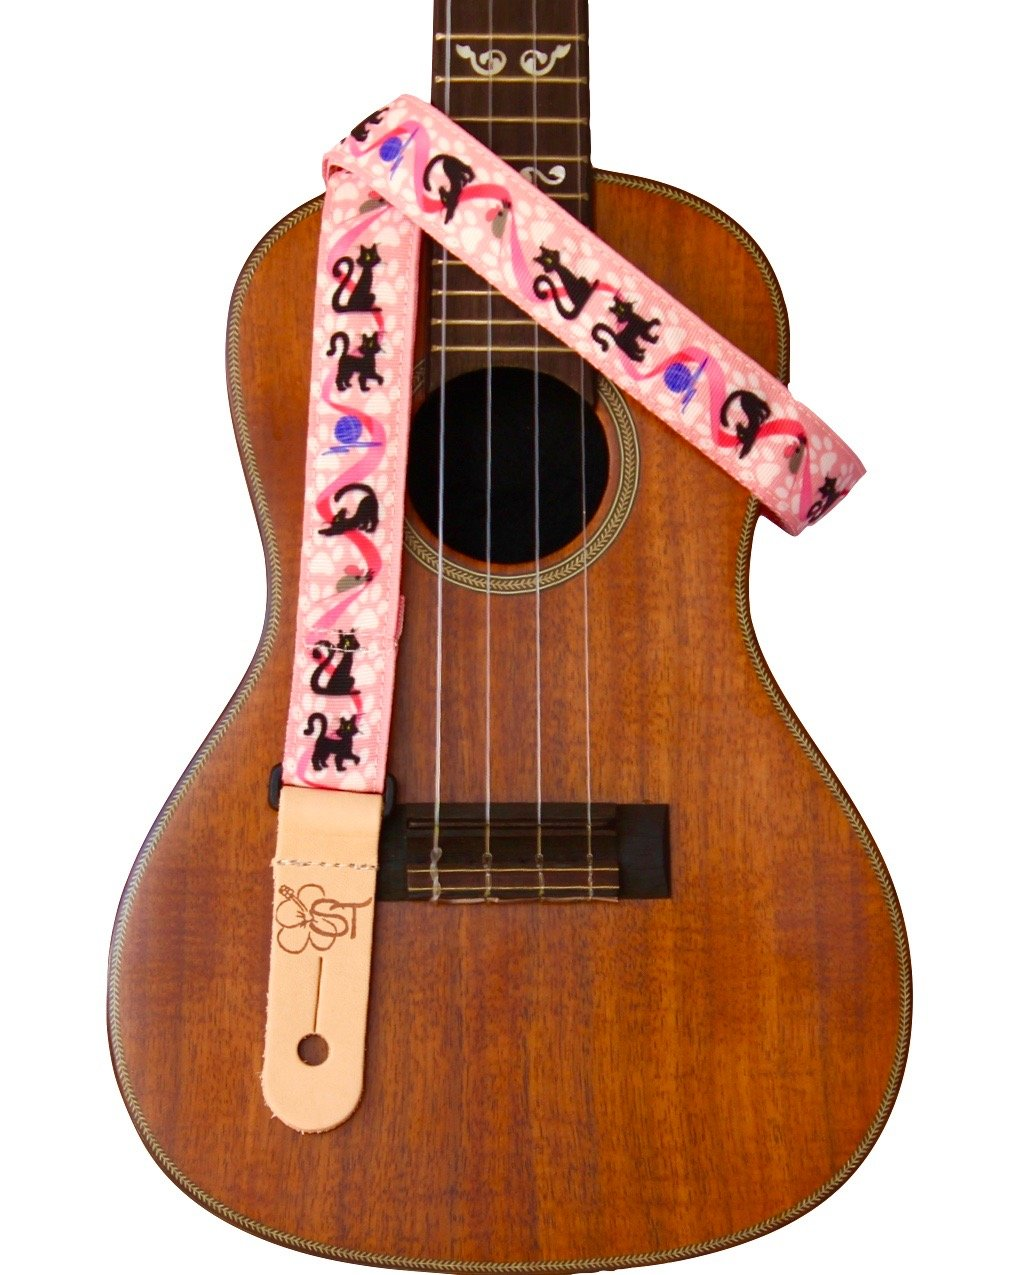 ST 1 Ukulele Strap - Cats on Pink